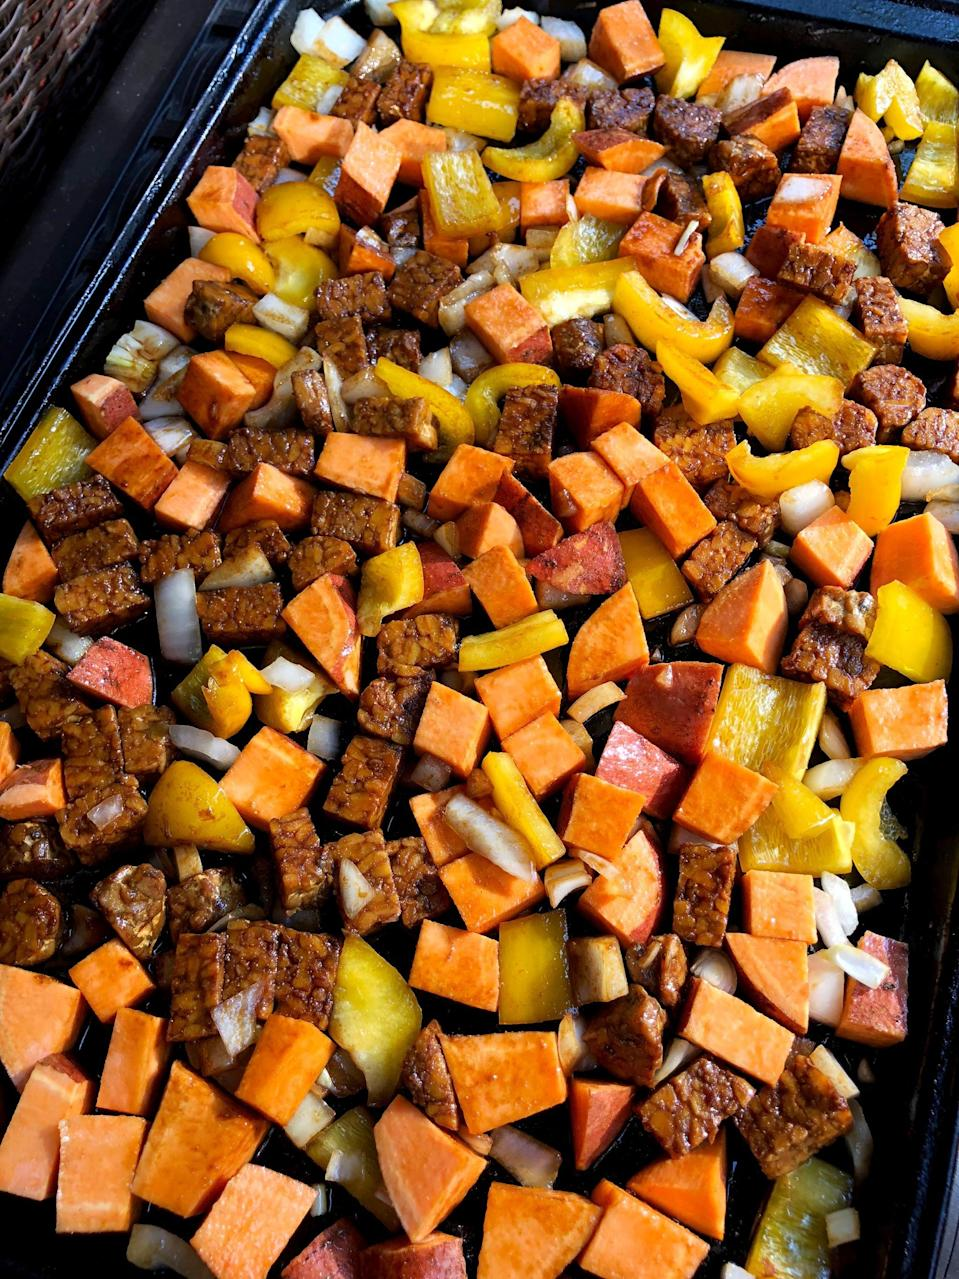 """<p>This one-pan meal is so easy and delicious, you'll want to add it to your weekly meal rotation. Look for a tempeh that's grain-free.</p> <p><strong>Get the recipe:</strong> <a href=""""https://www.popsugar.com/fitness/Roasted-Tempeh-Sweet-Potato-Pepper-1-Pan-Meal-45366372"""" class=""""link rapid-noclick-resp"""" rel=""""nofollow noopener"""" target=""""_blank"""" data-ylk=""""slk:maple-ginger roasted tempeh, sweet potato, pepper, and onion"""">maple-ginger roasted tempeh, sweet potato, pepper, and onion</a></p>"""